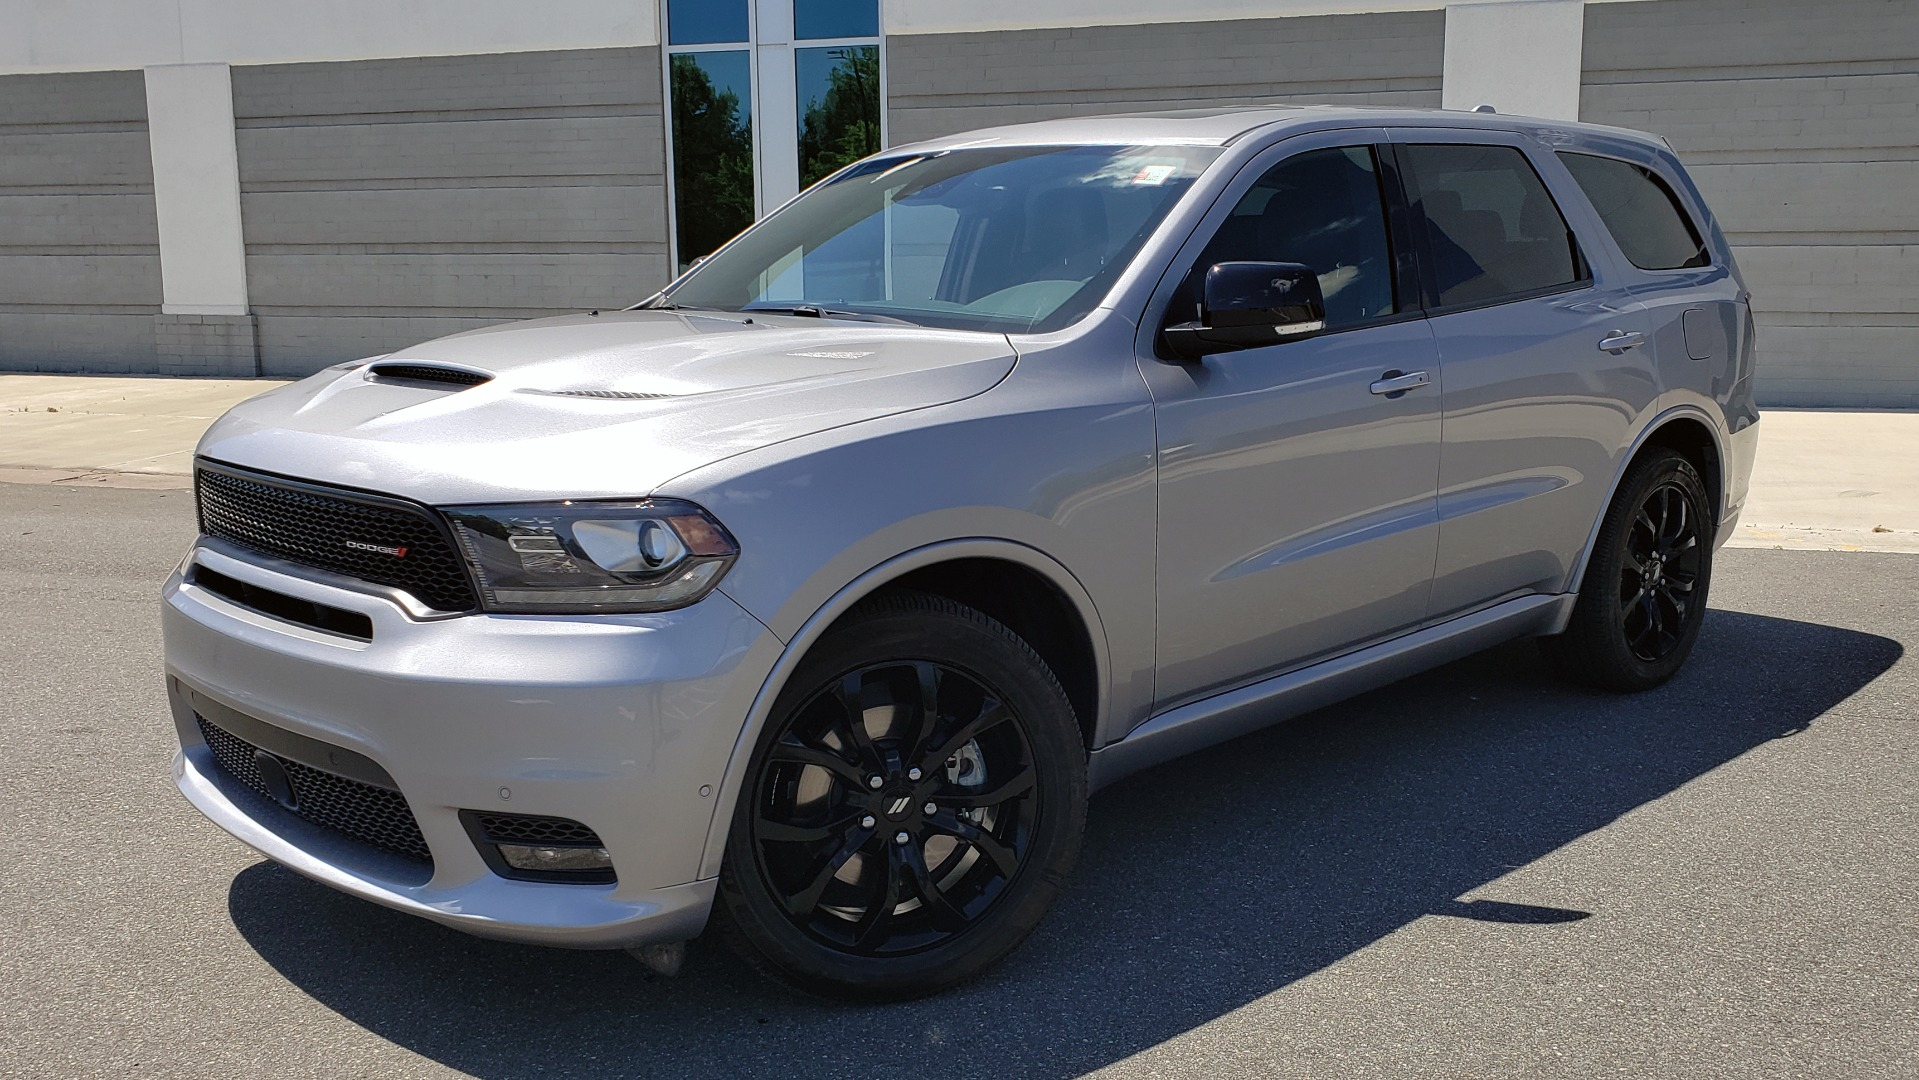 Used 2019 Dodge DURANGO R/T BLACKTOP AWD / TECH / ADAPT CRUS / TOW GROUP / SUNROOF / REARVIEW for sale Sold at Formula Imports in Charlotte NC 28227 1